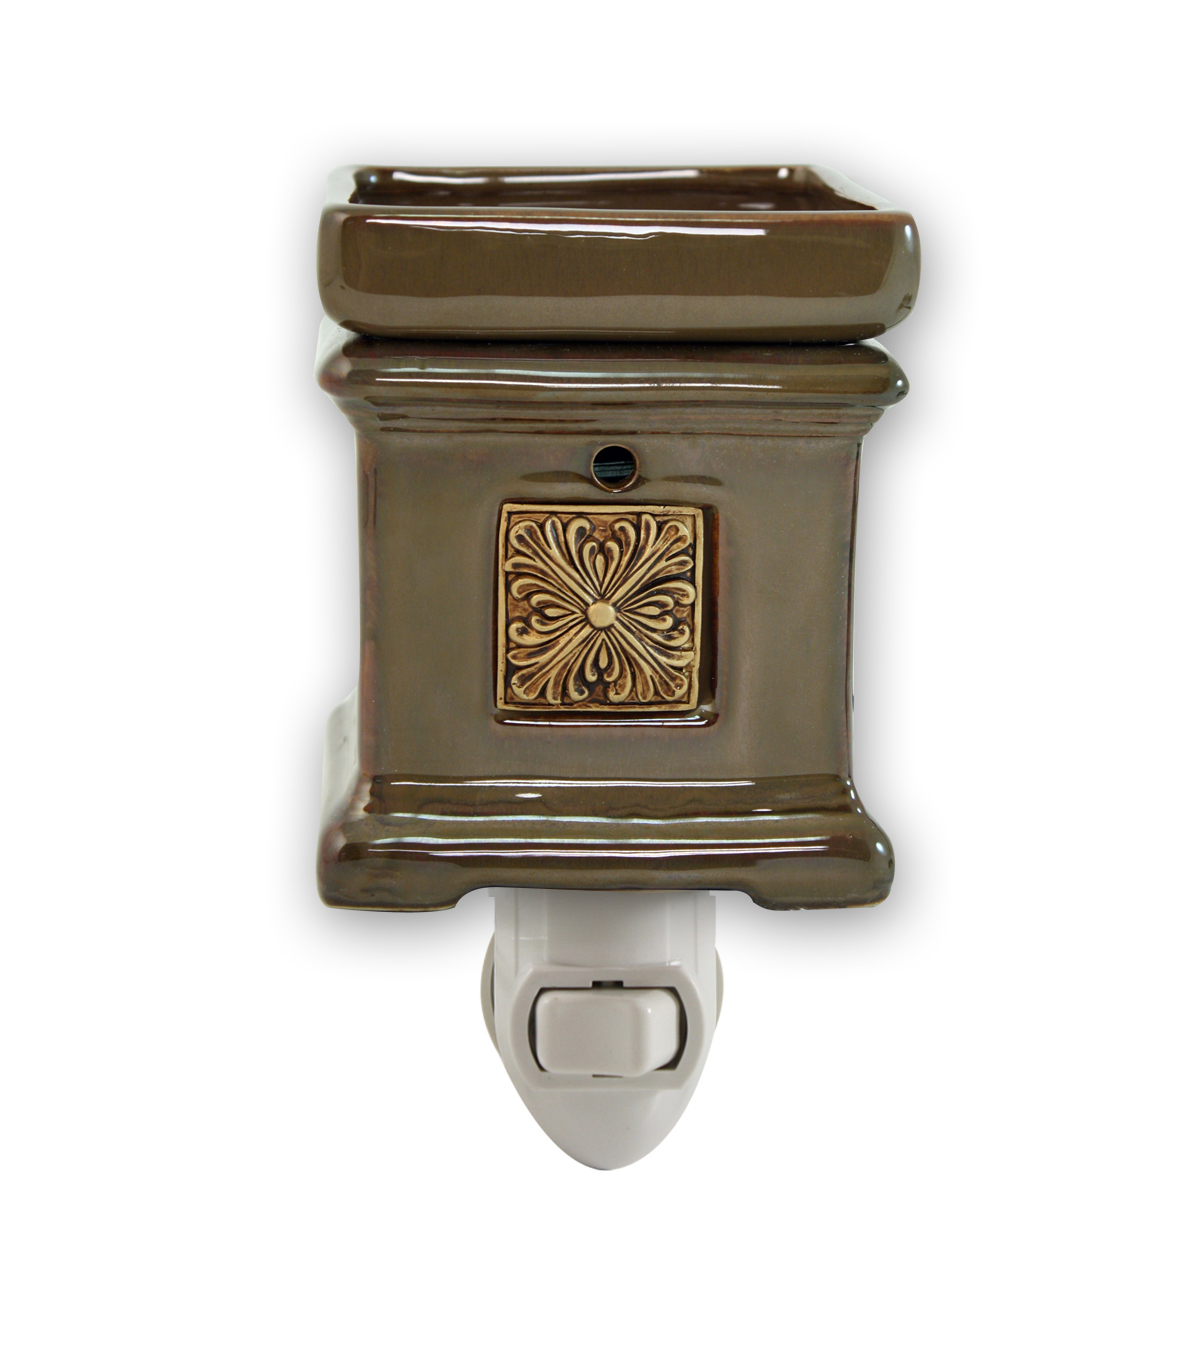 Hudson 43 Candle & Light Collection Brown Square Plug In